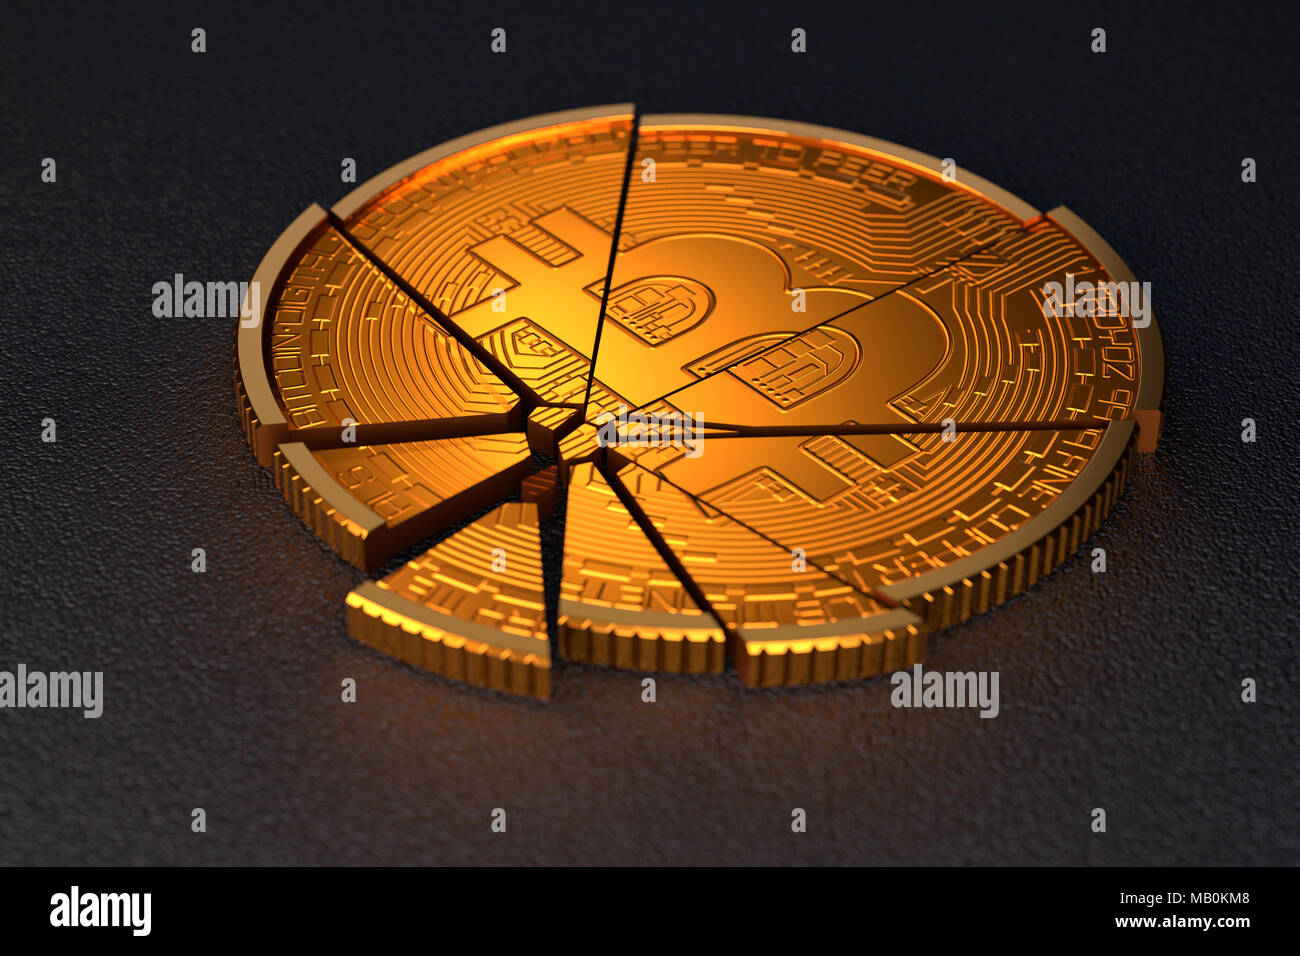 Broken bitcoin on dark background. Concept illustrates bitcoin crash, bitcoin bubble burst, or cryptocurrency market collapse - Stock Image